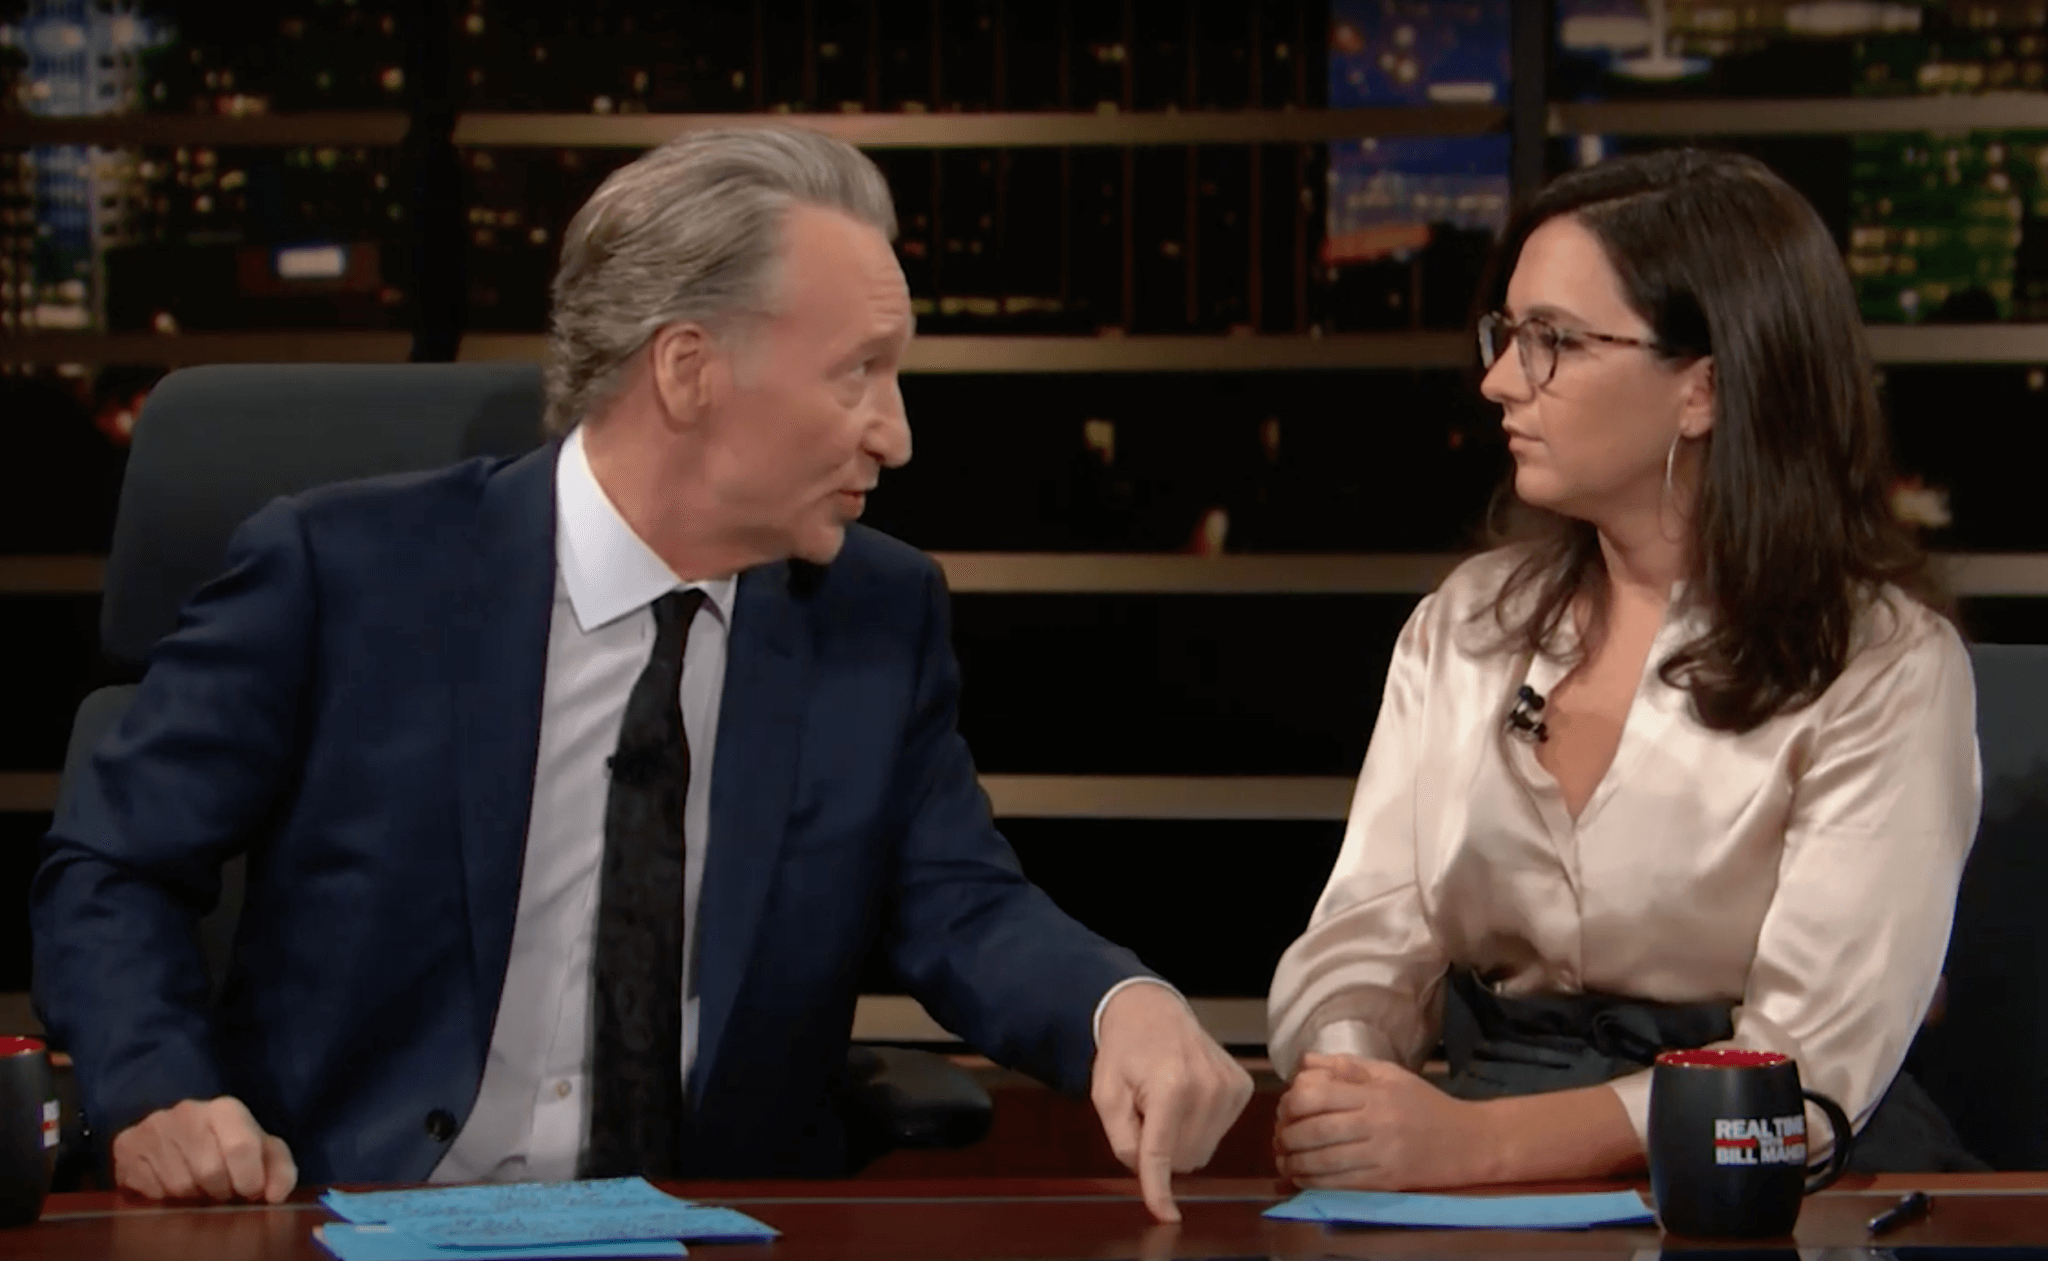 Bill Maher and Bari Weiss on an episode of Real Time with Bill Maher that aired September 13, 2019.